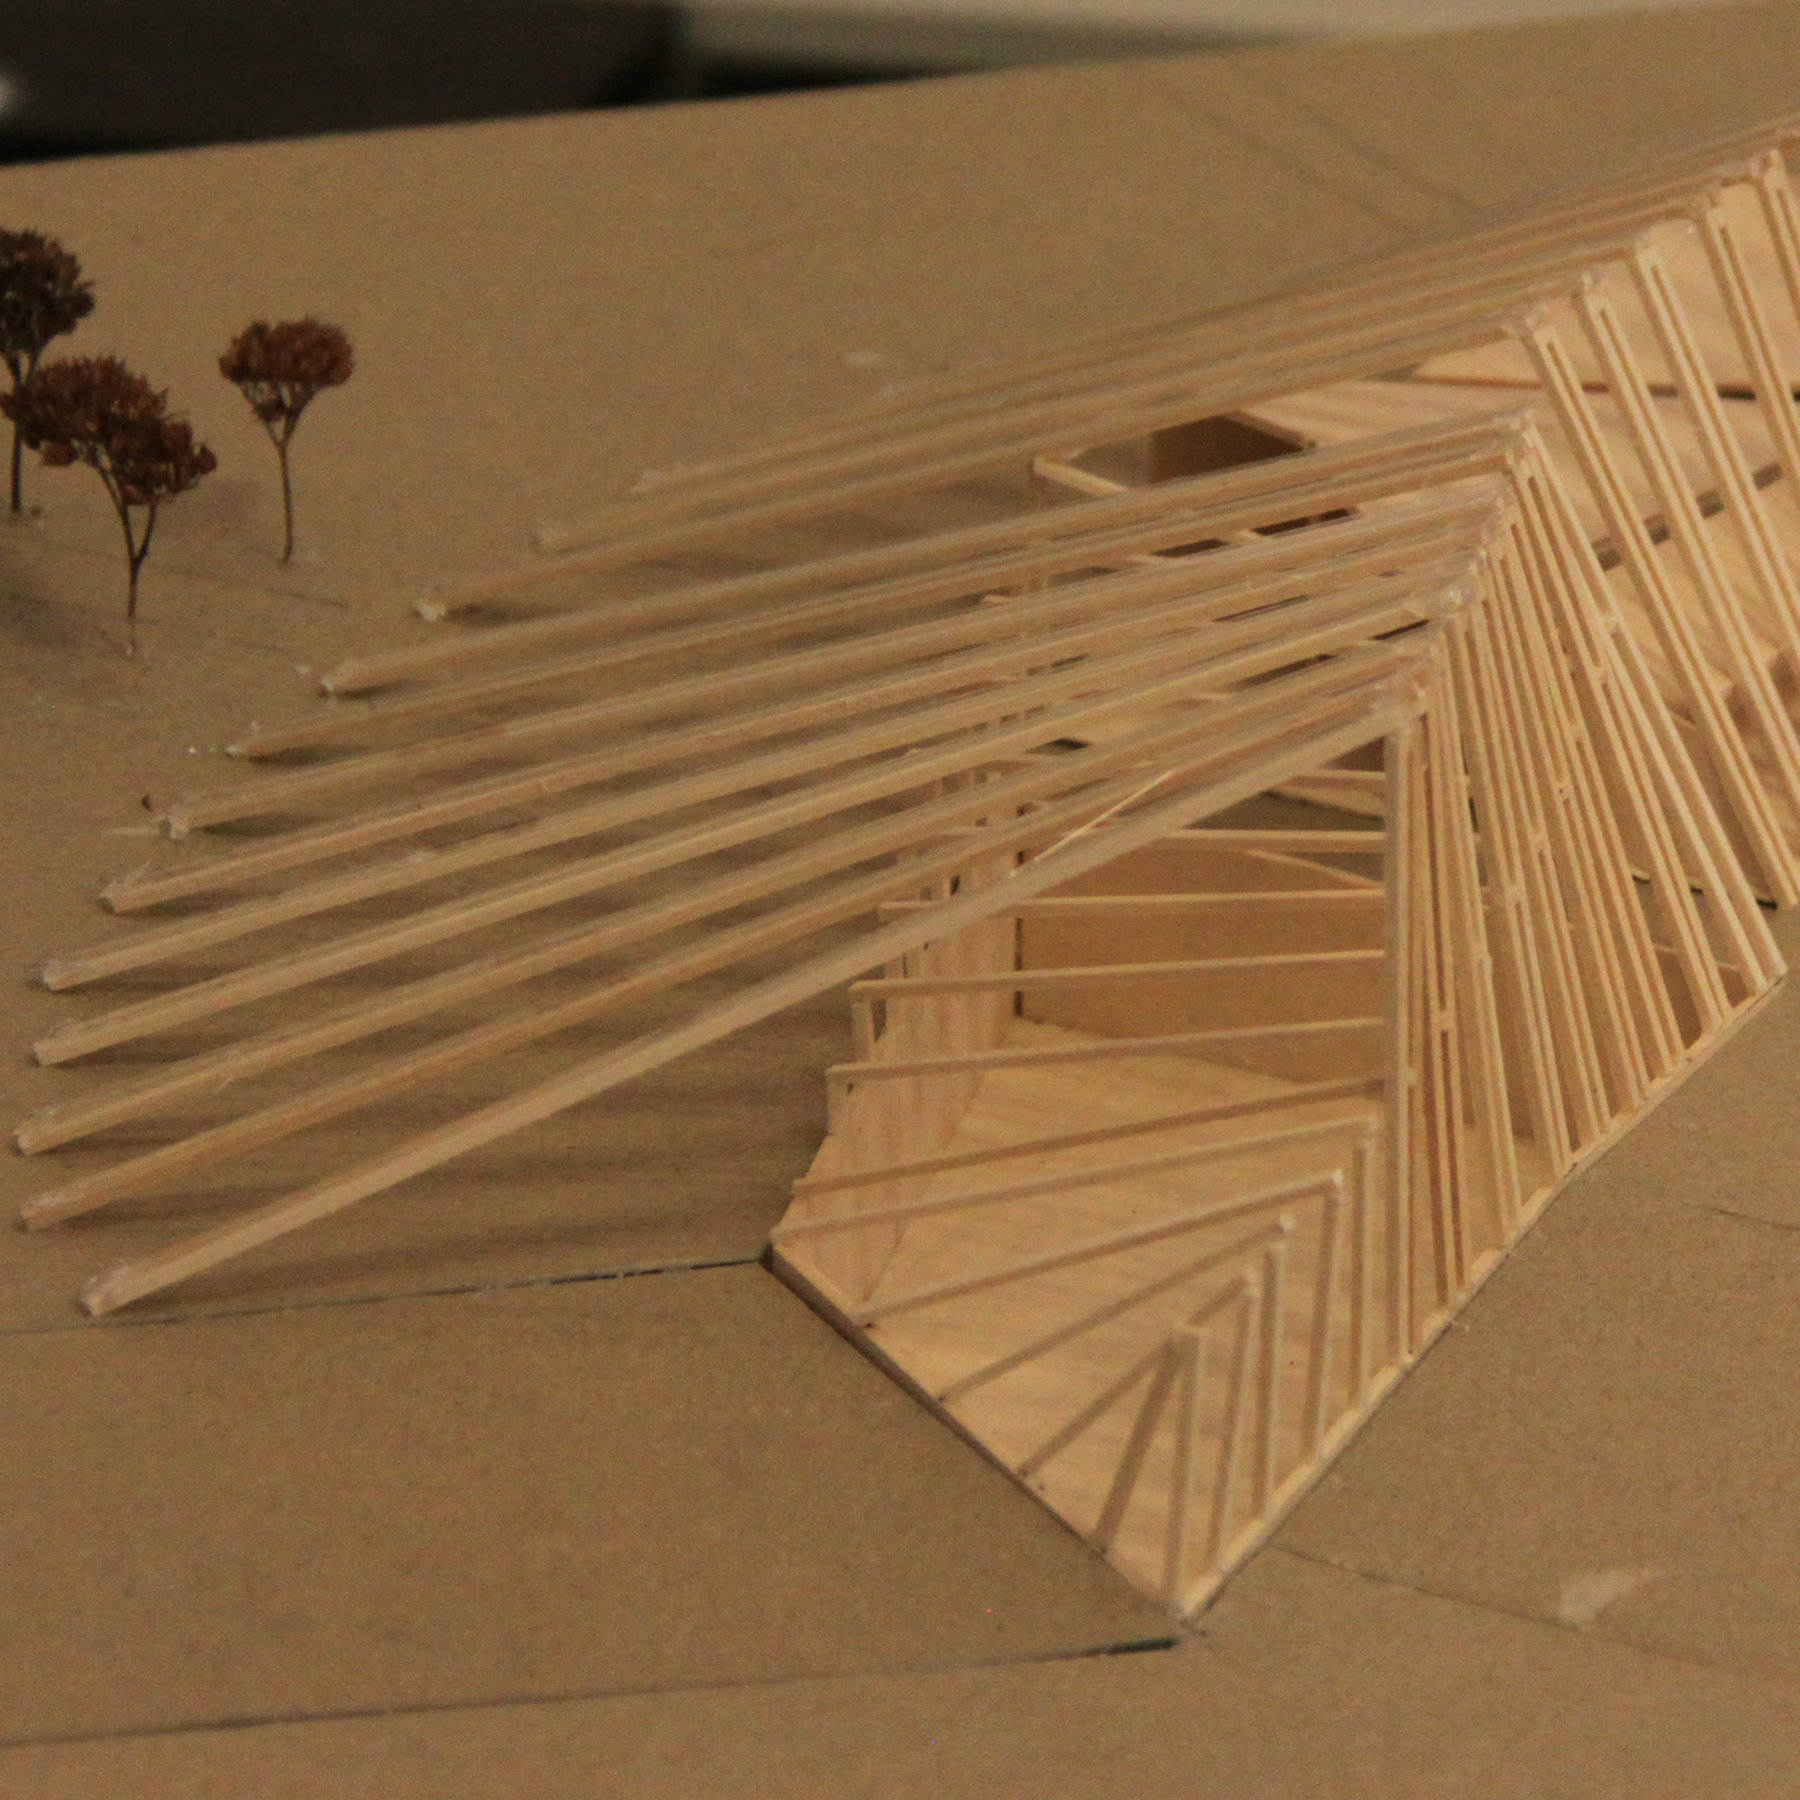 wooden model of a pavilion